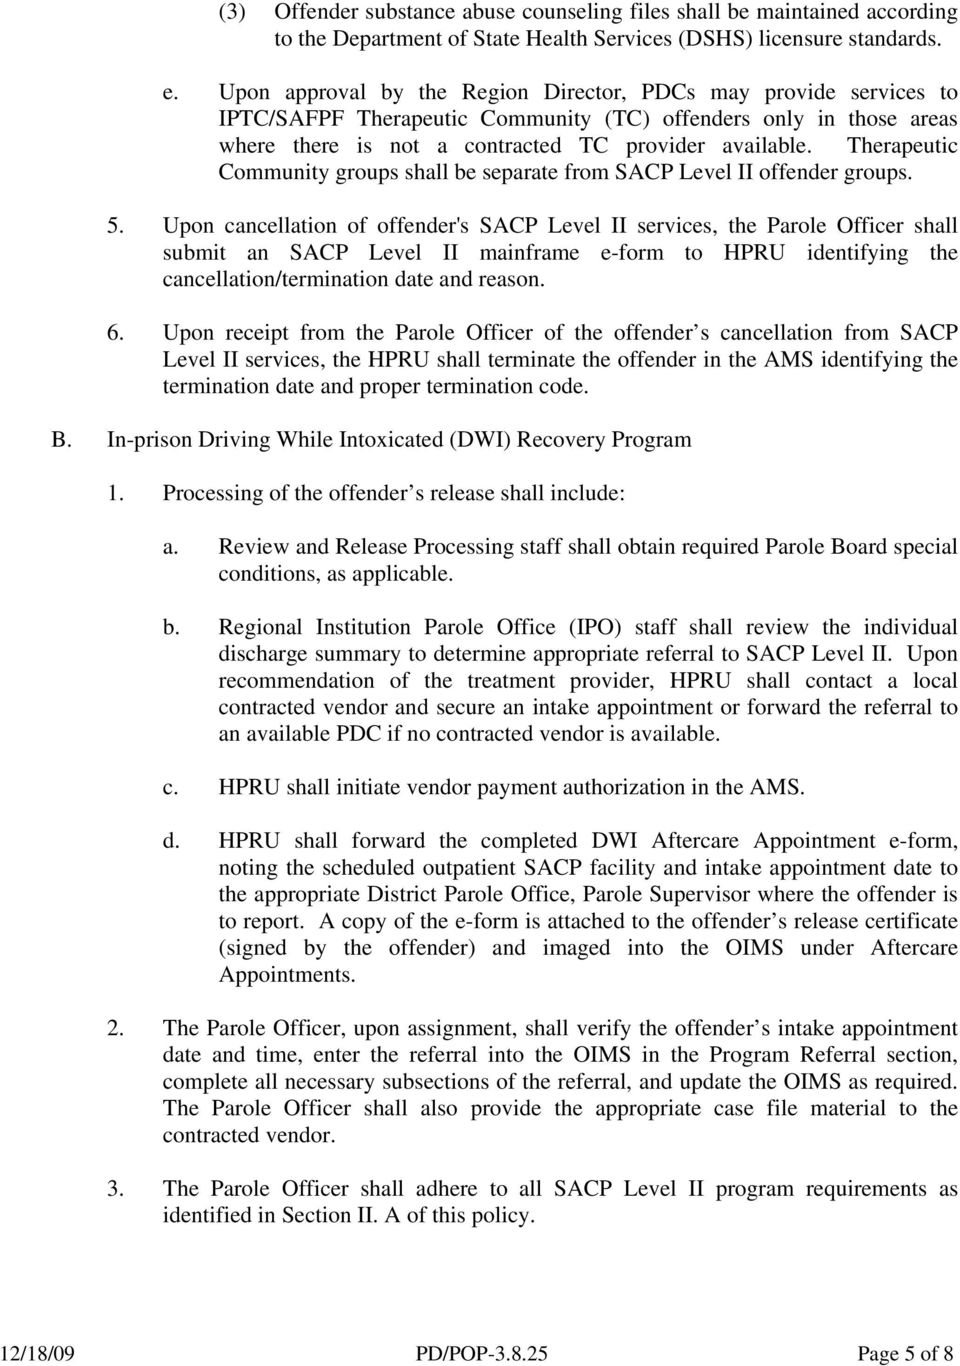 Therapeutic Community groups shall be separate from SACP Level II offender groups. 5.